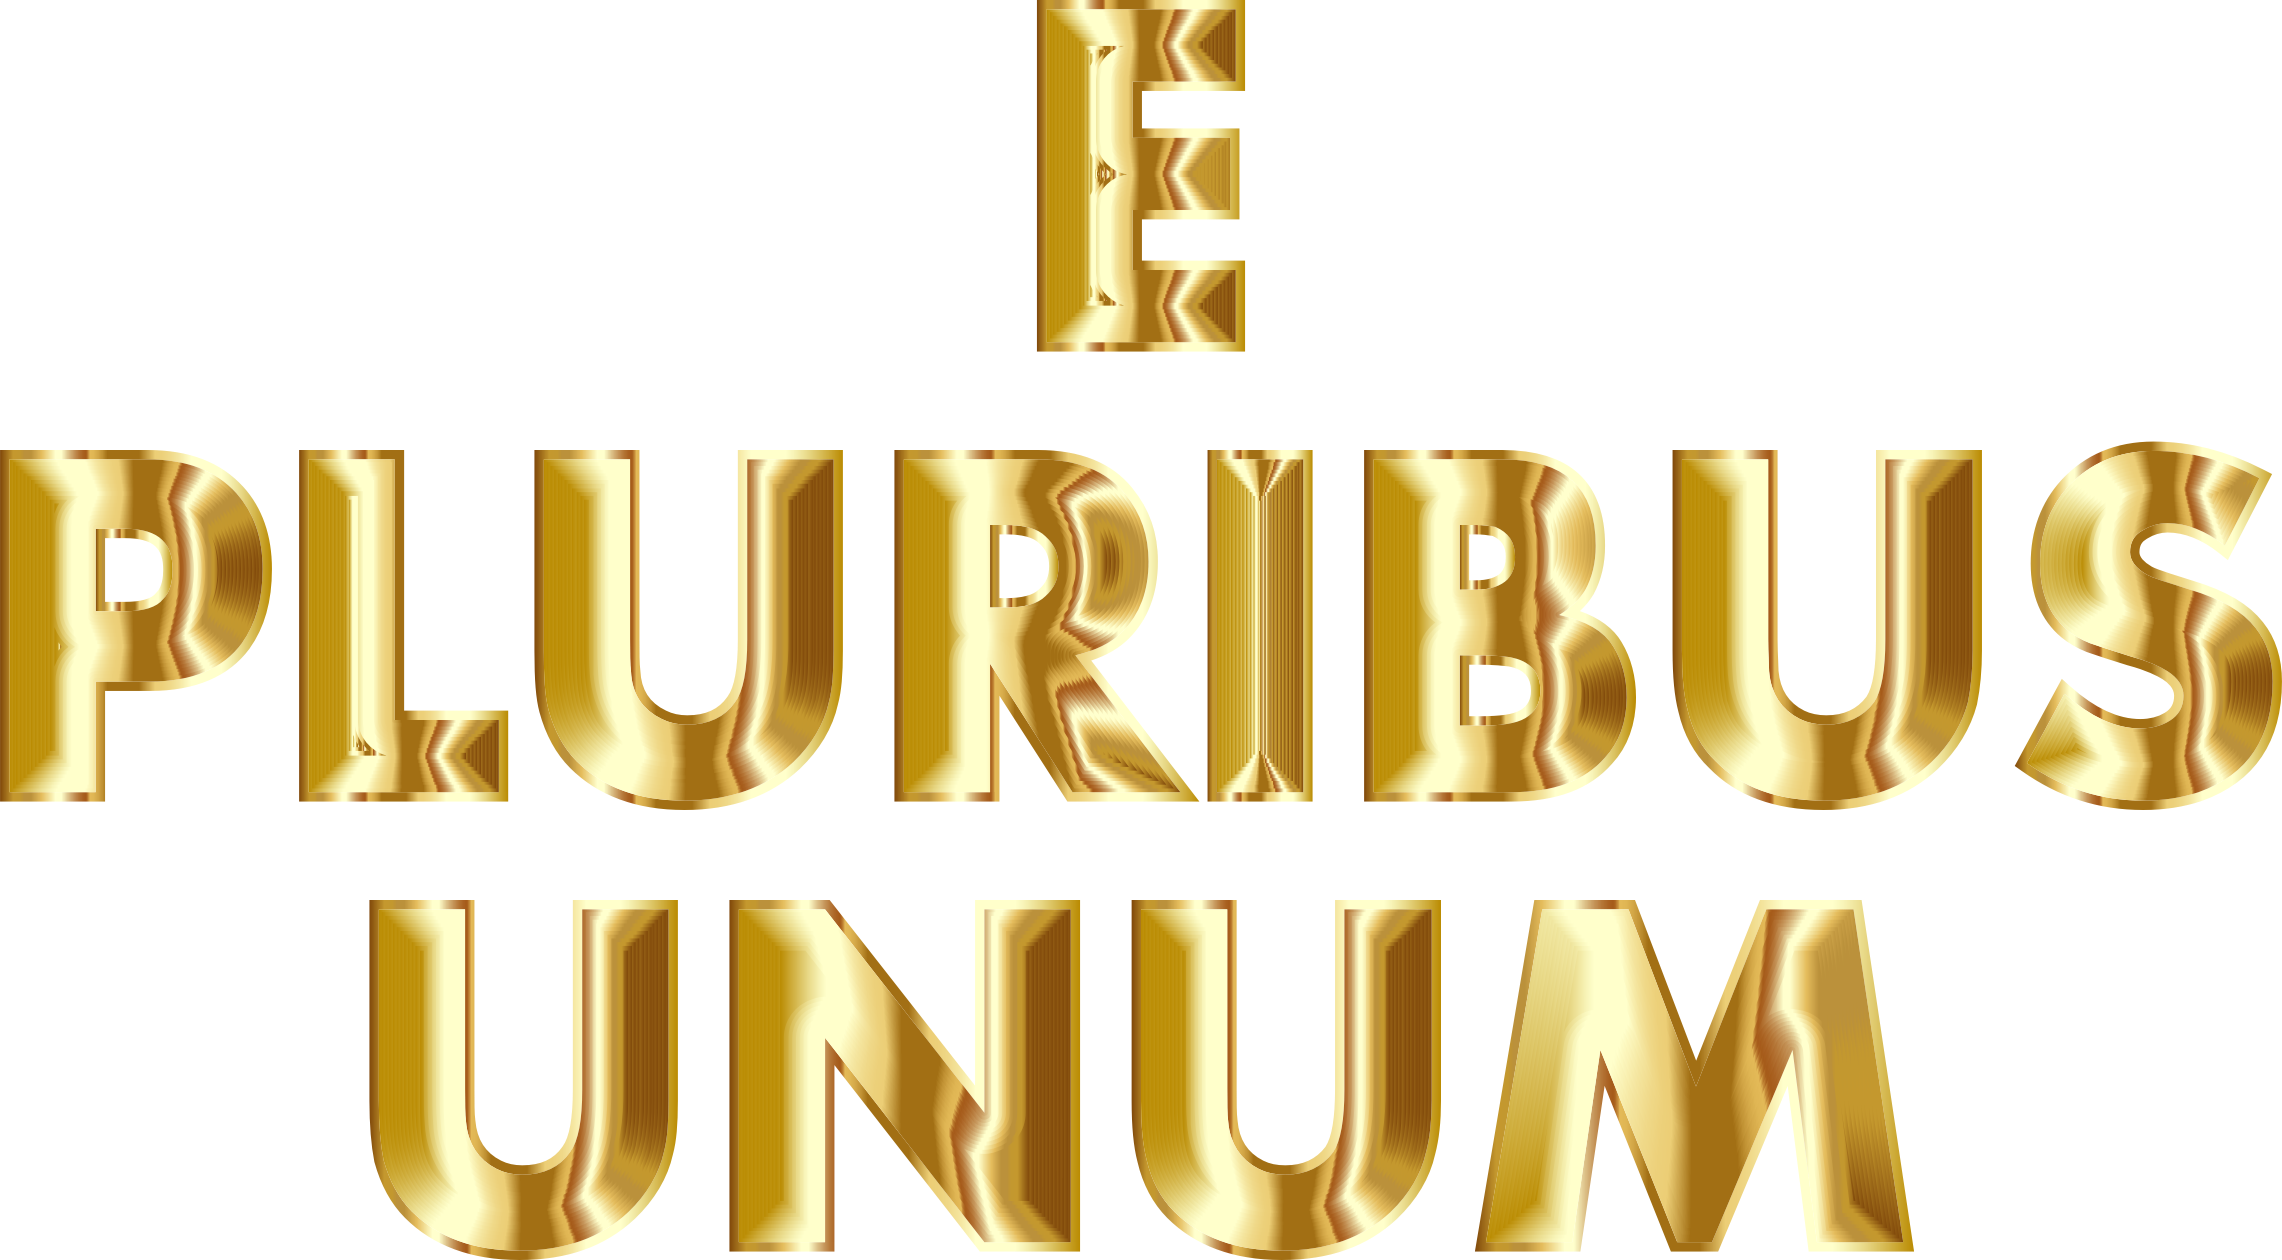 E Pluribus Unum Gold Typography No Background by GDJ